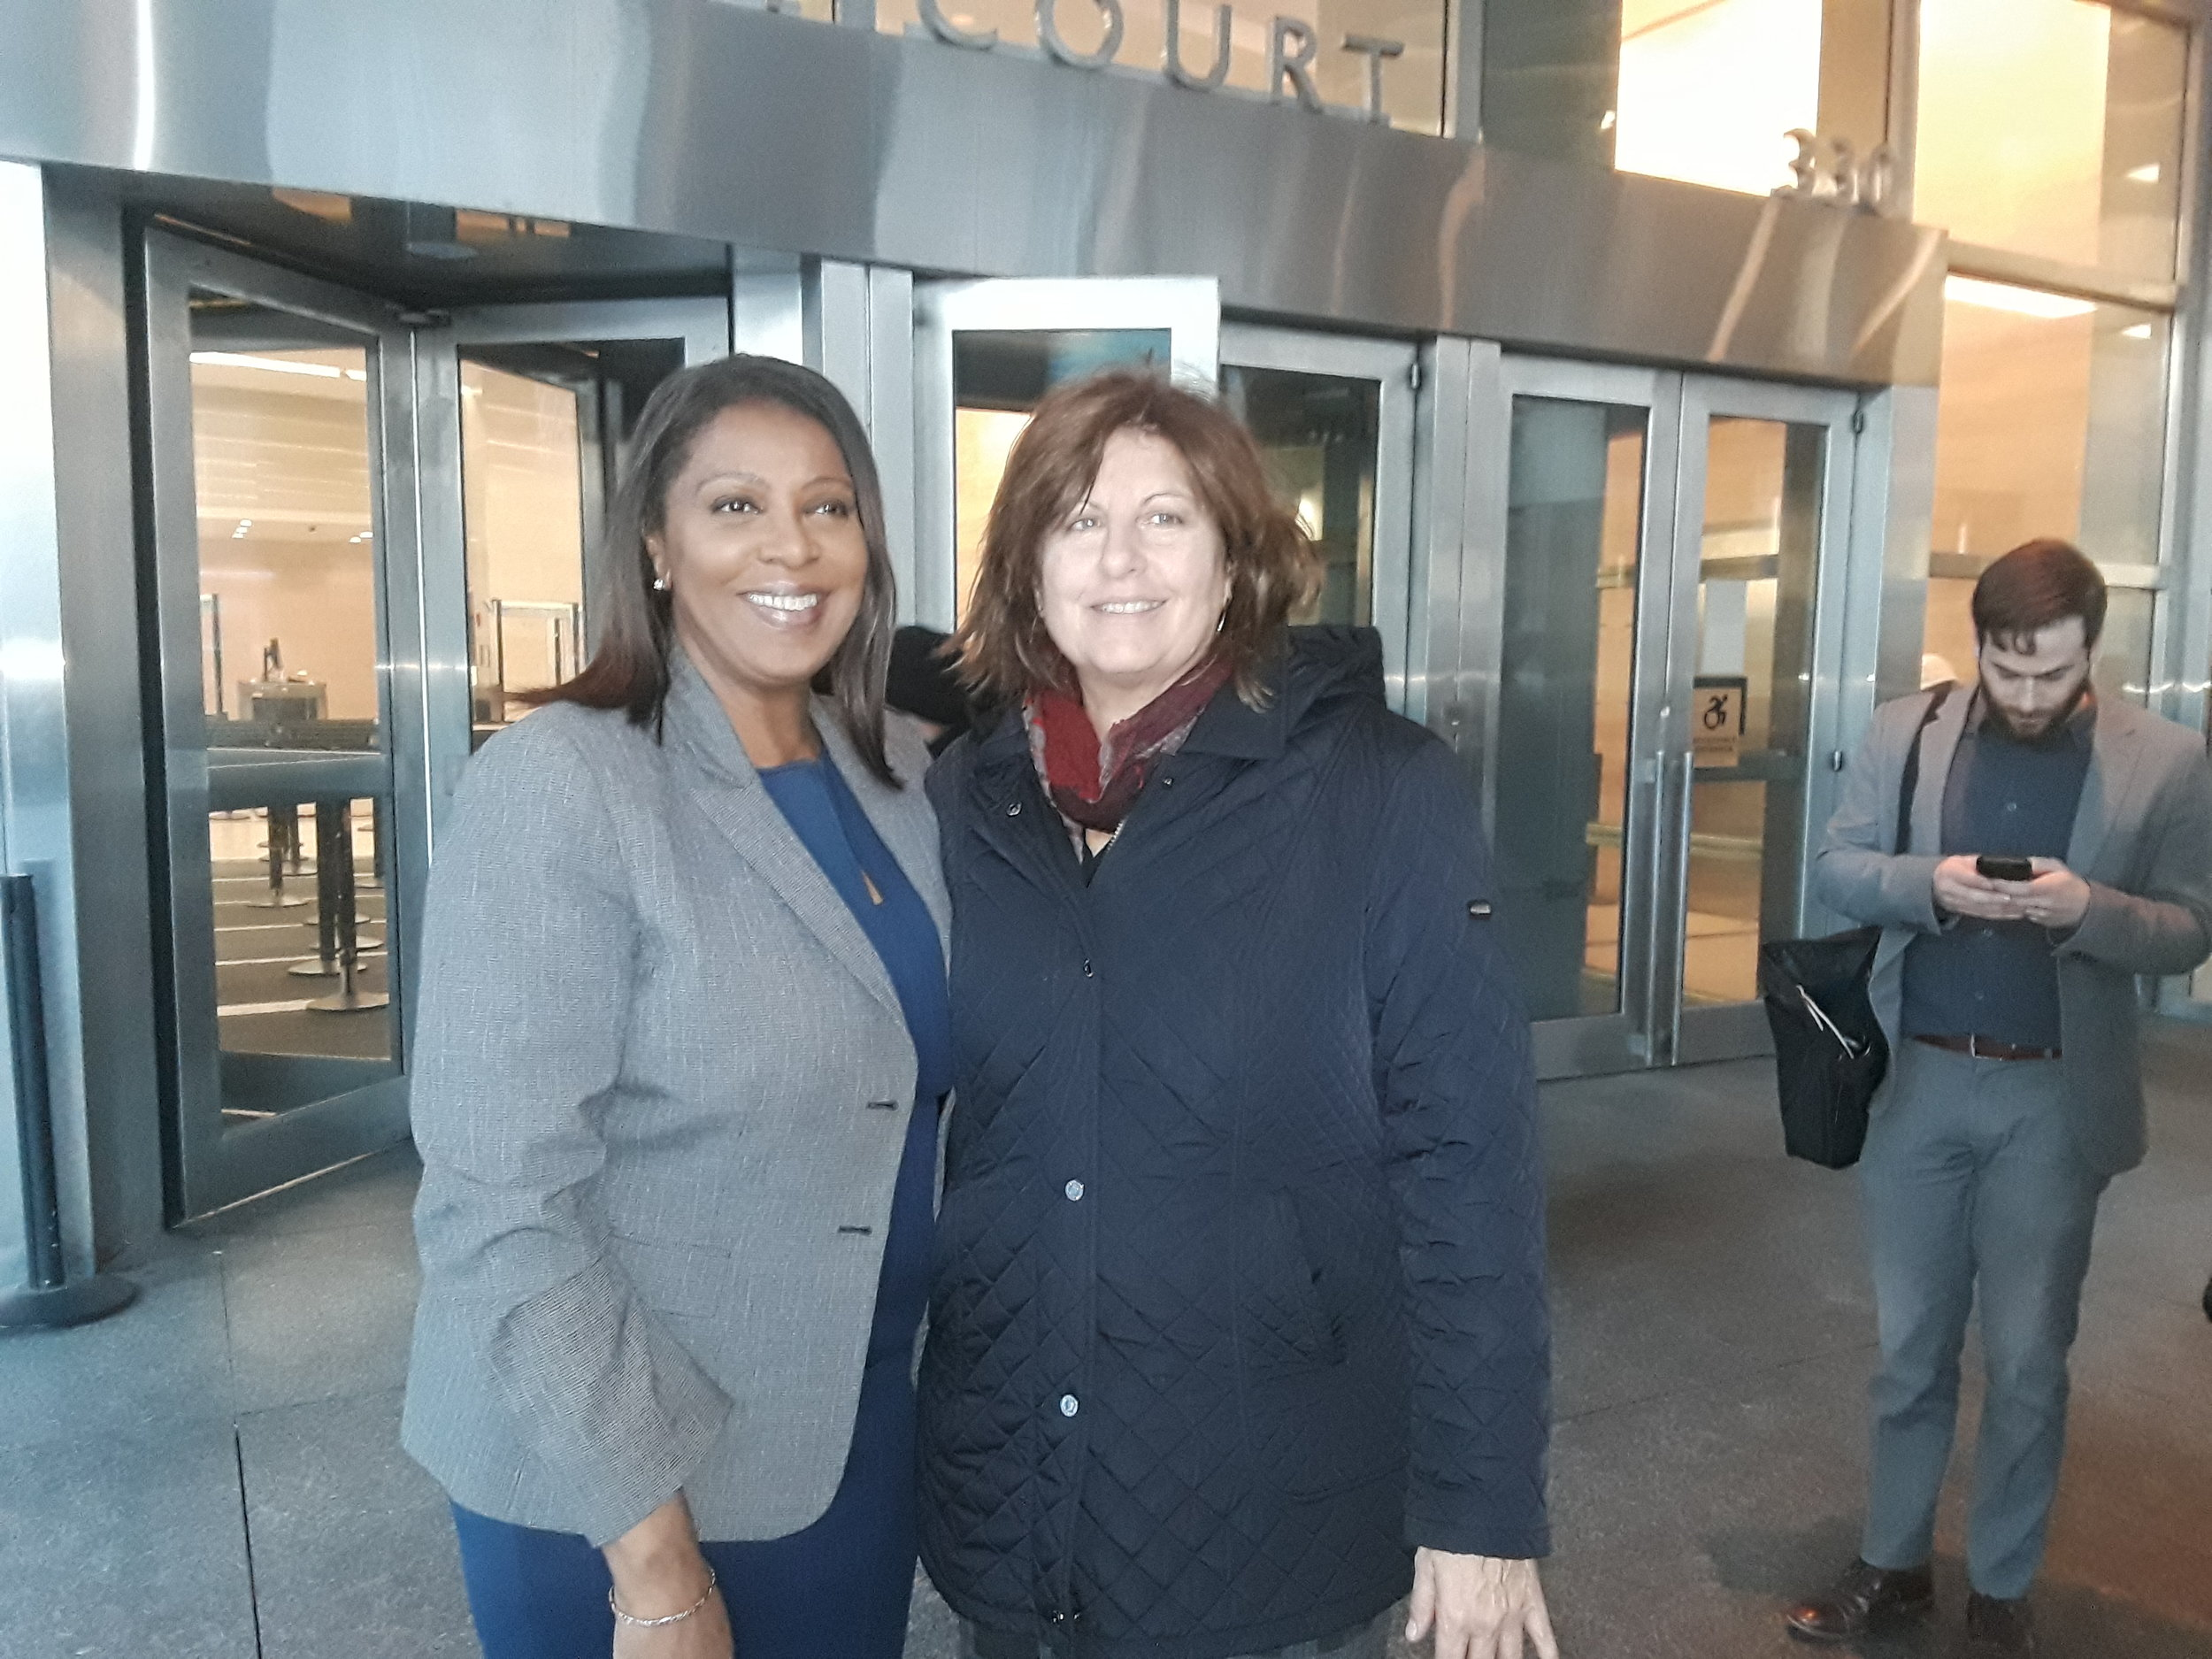 New York State Attorney General-elect Letitia James (left) and Brooklyn Defender Services Founder and Executive Director Lisa Schreibersdorf.  Eagle  photo by Christina Carrega